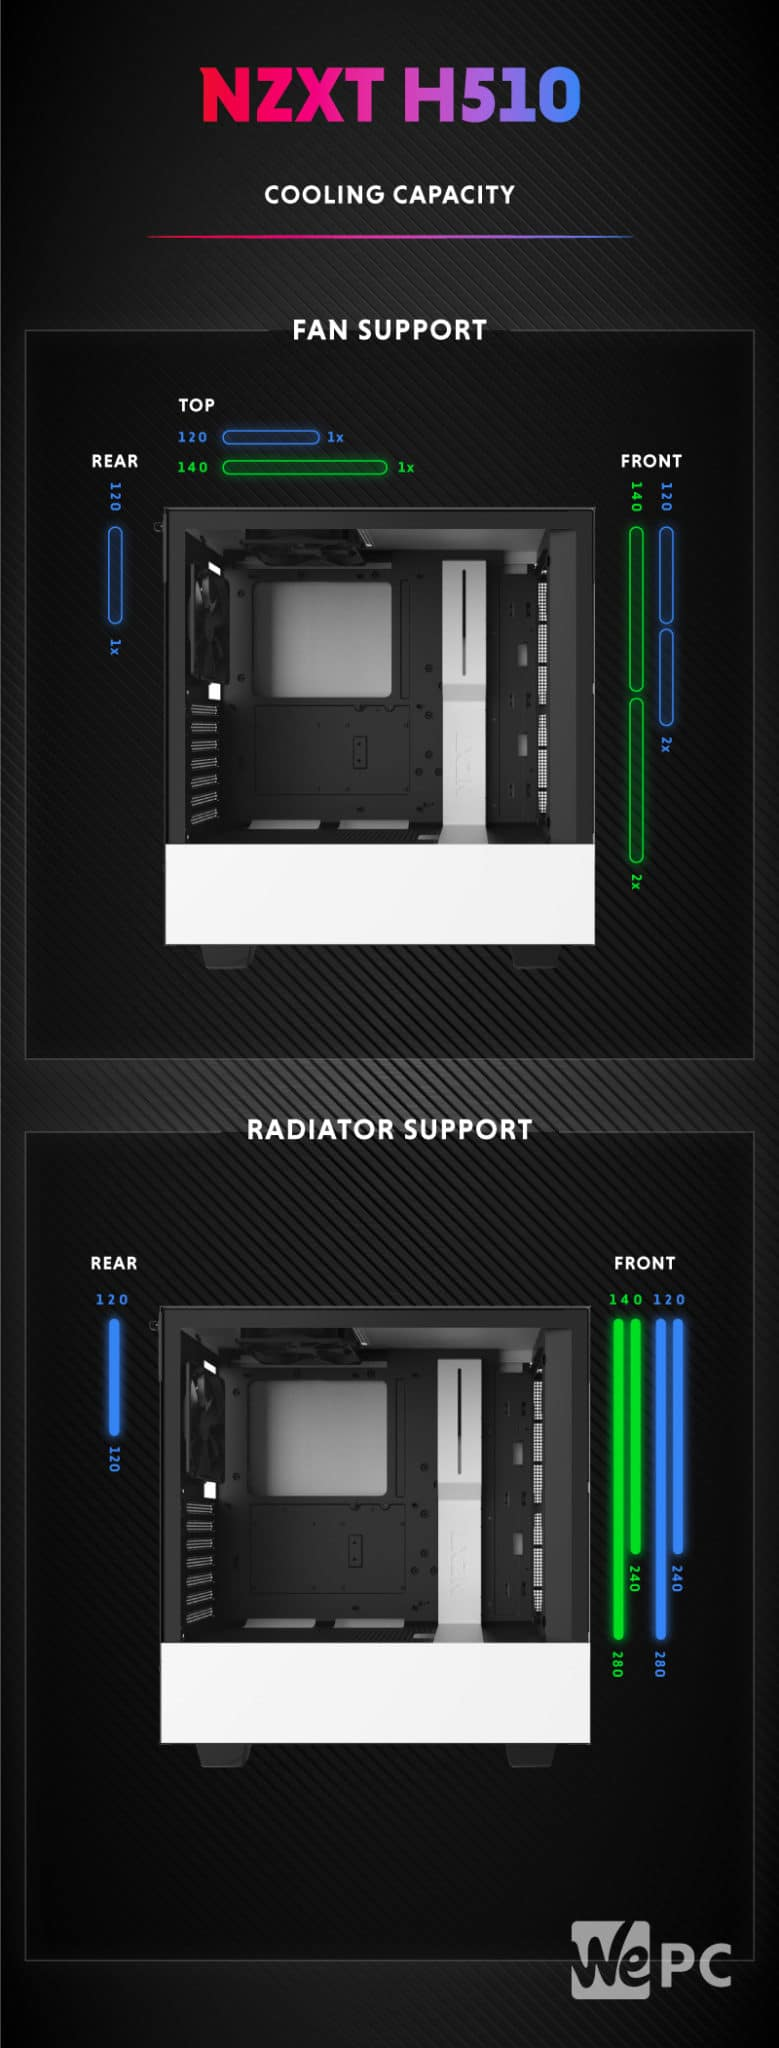 NZXT H510 Cooling Capacity